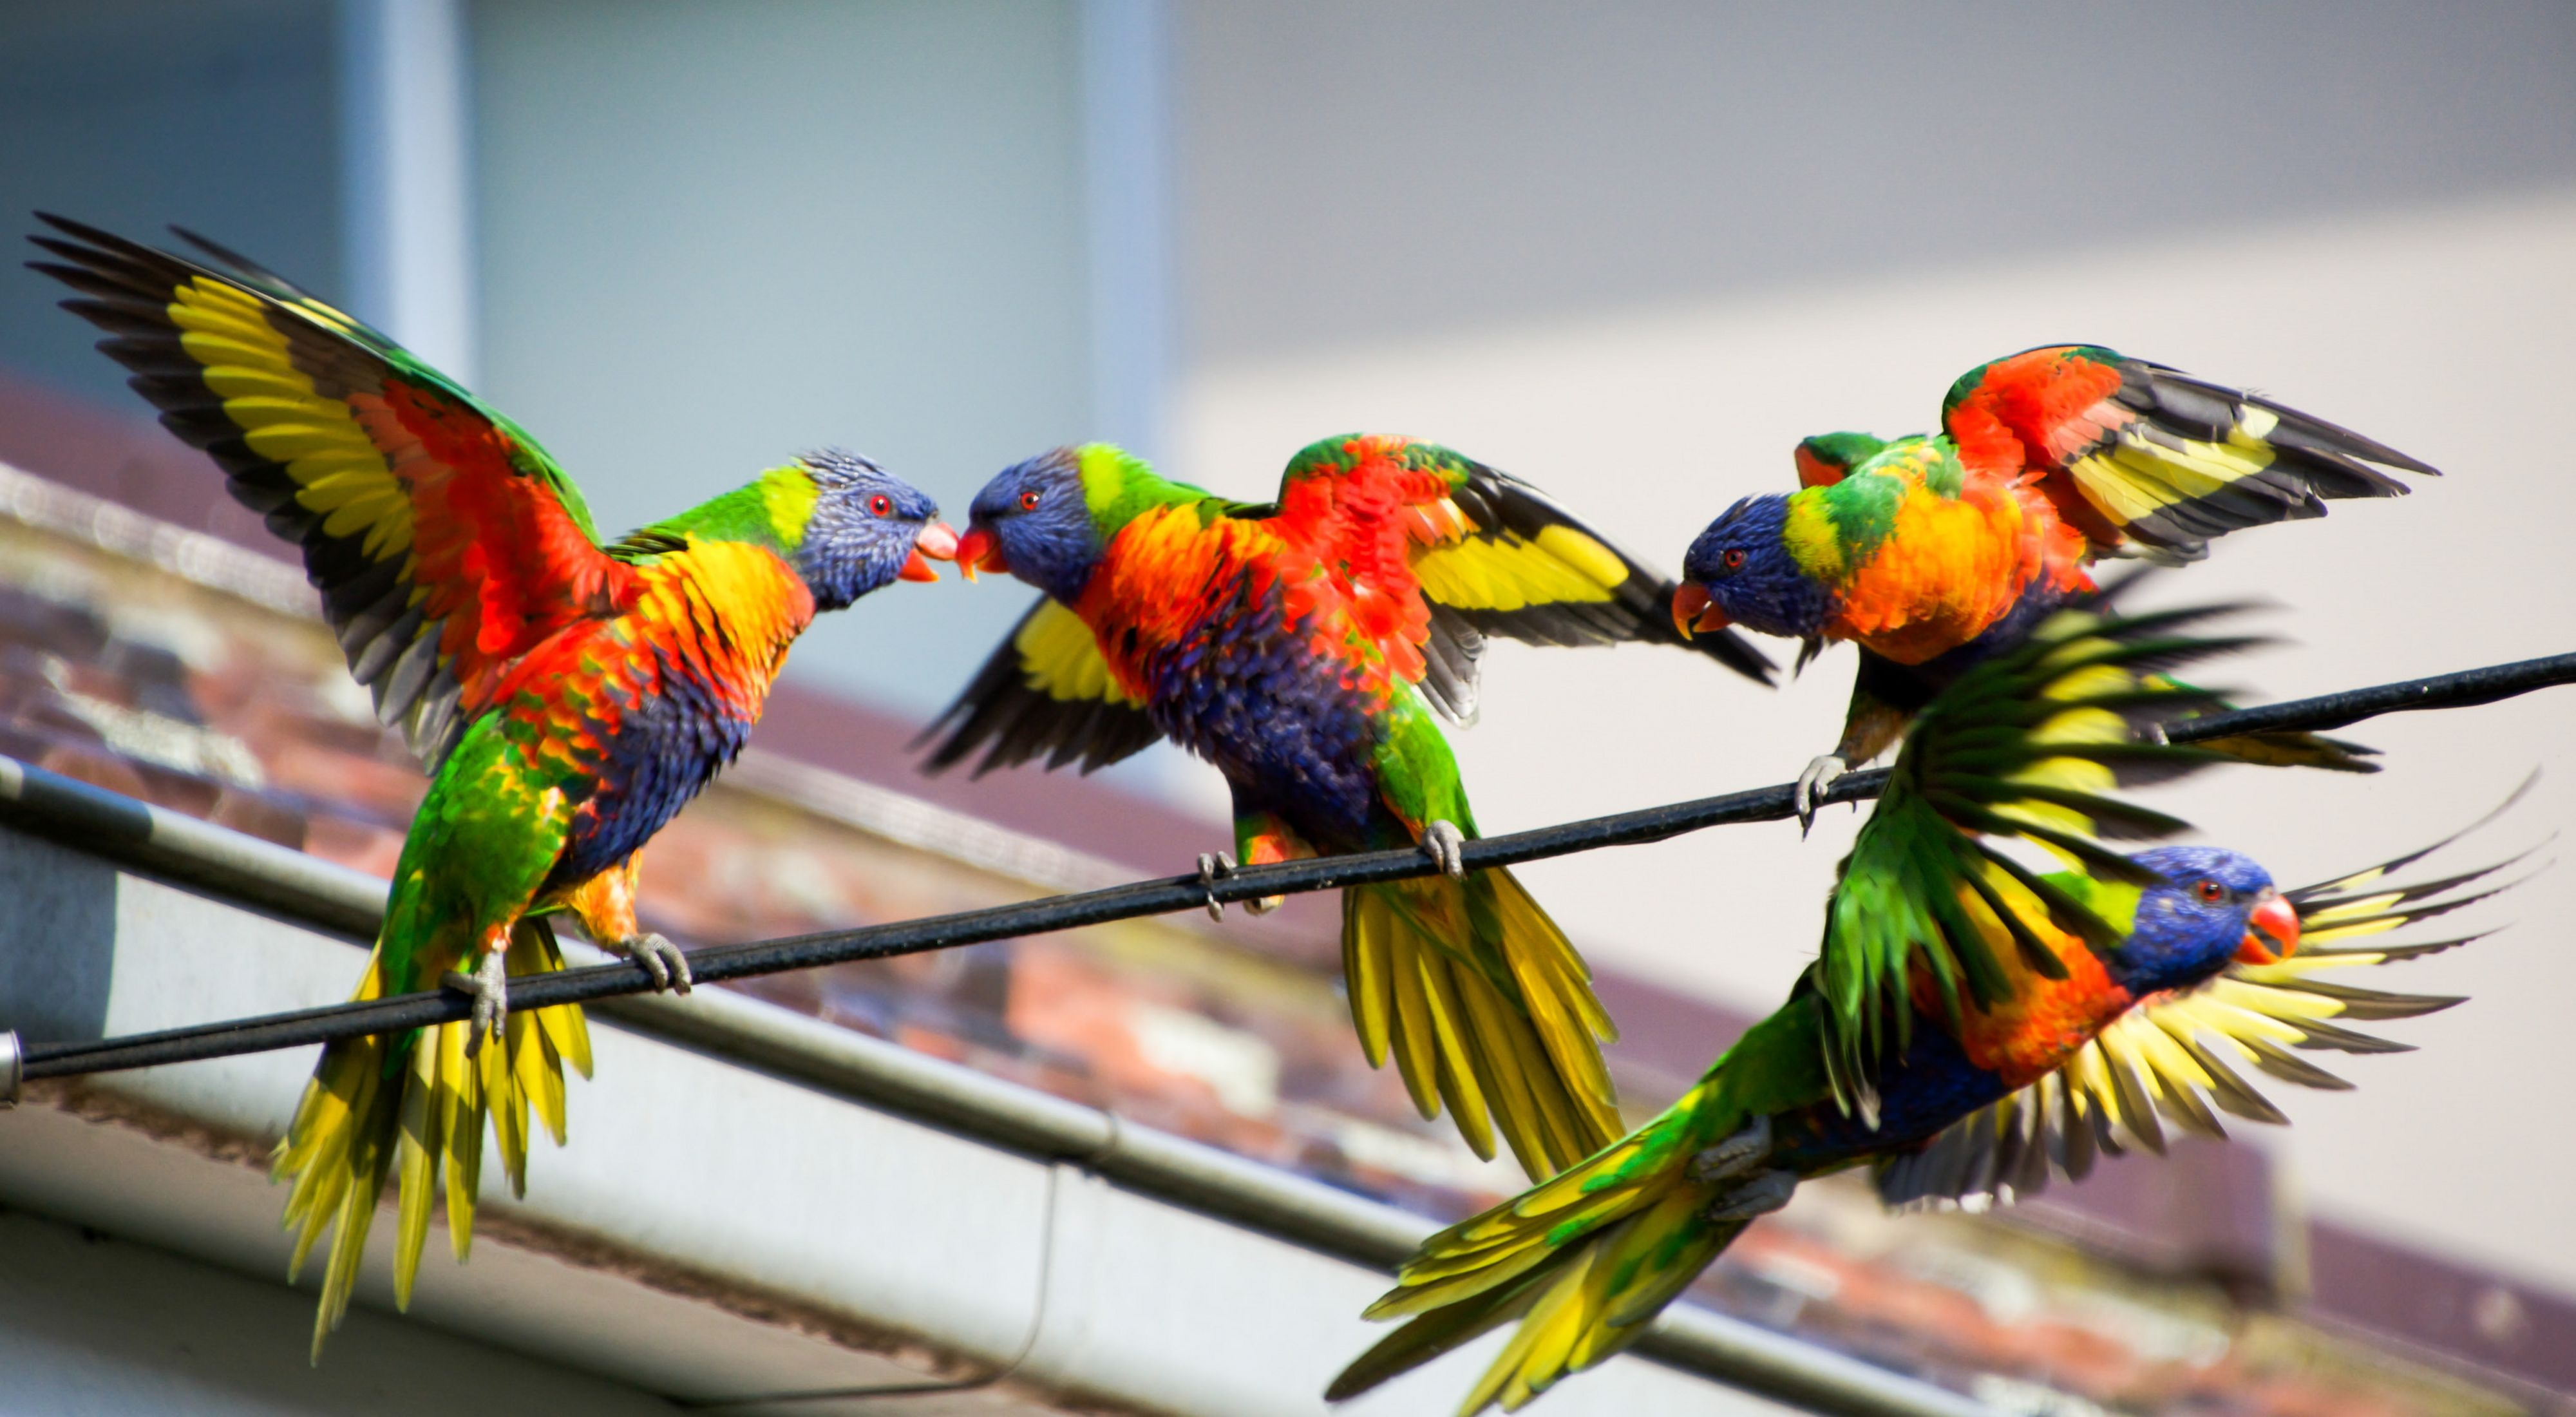 four brightly colored birds on a wire